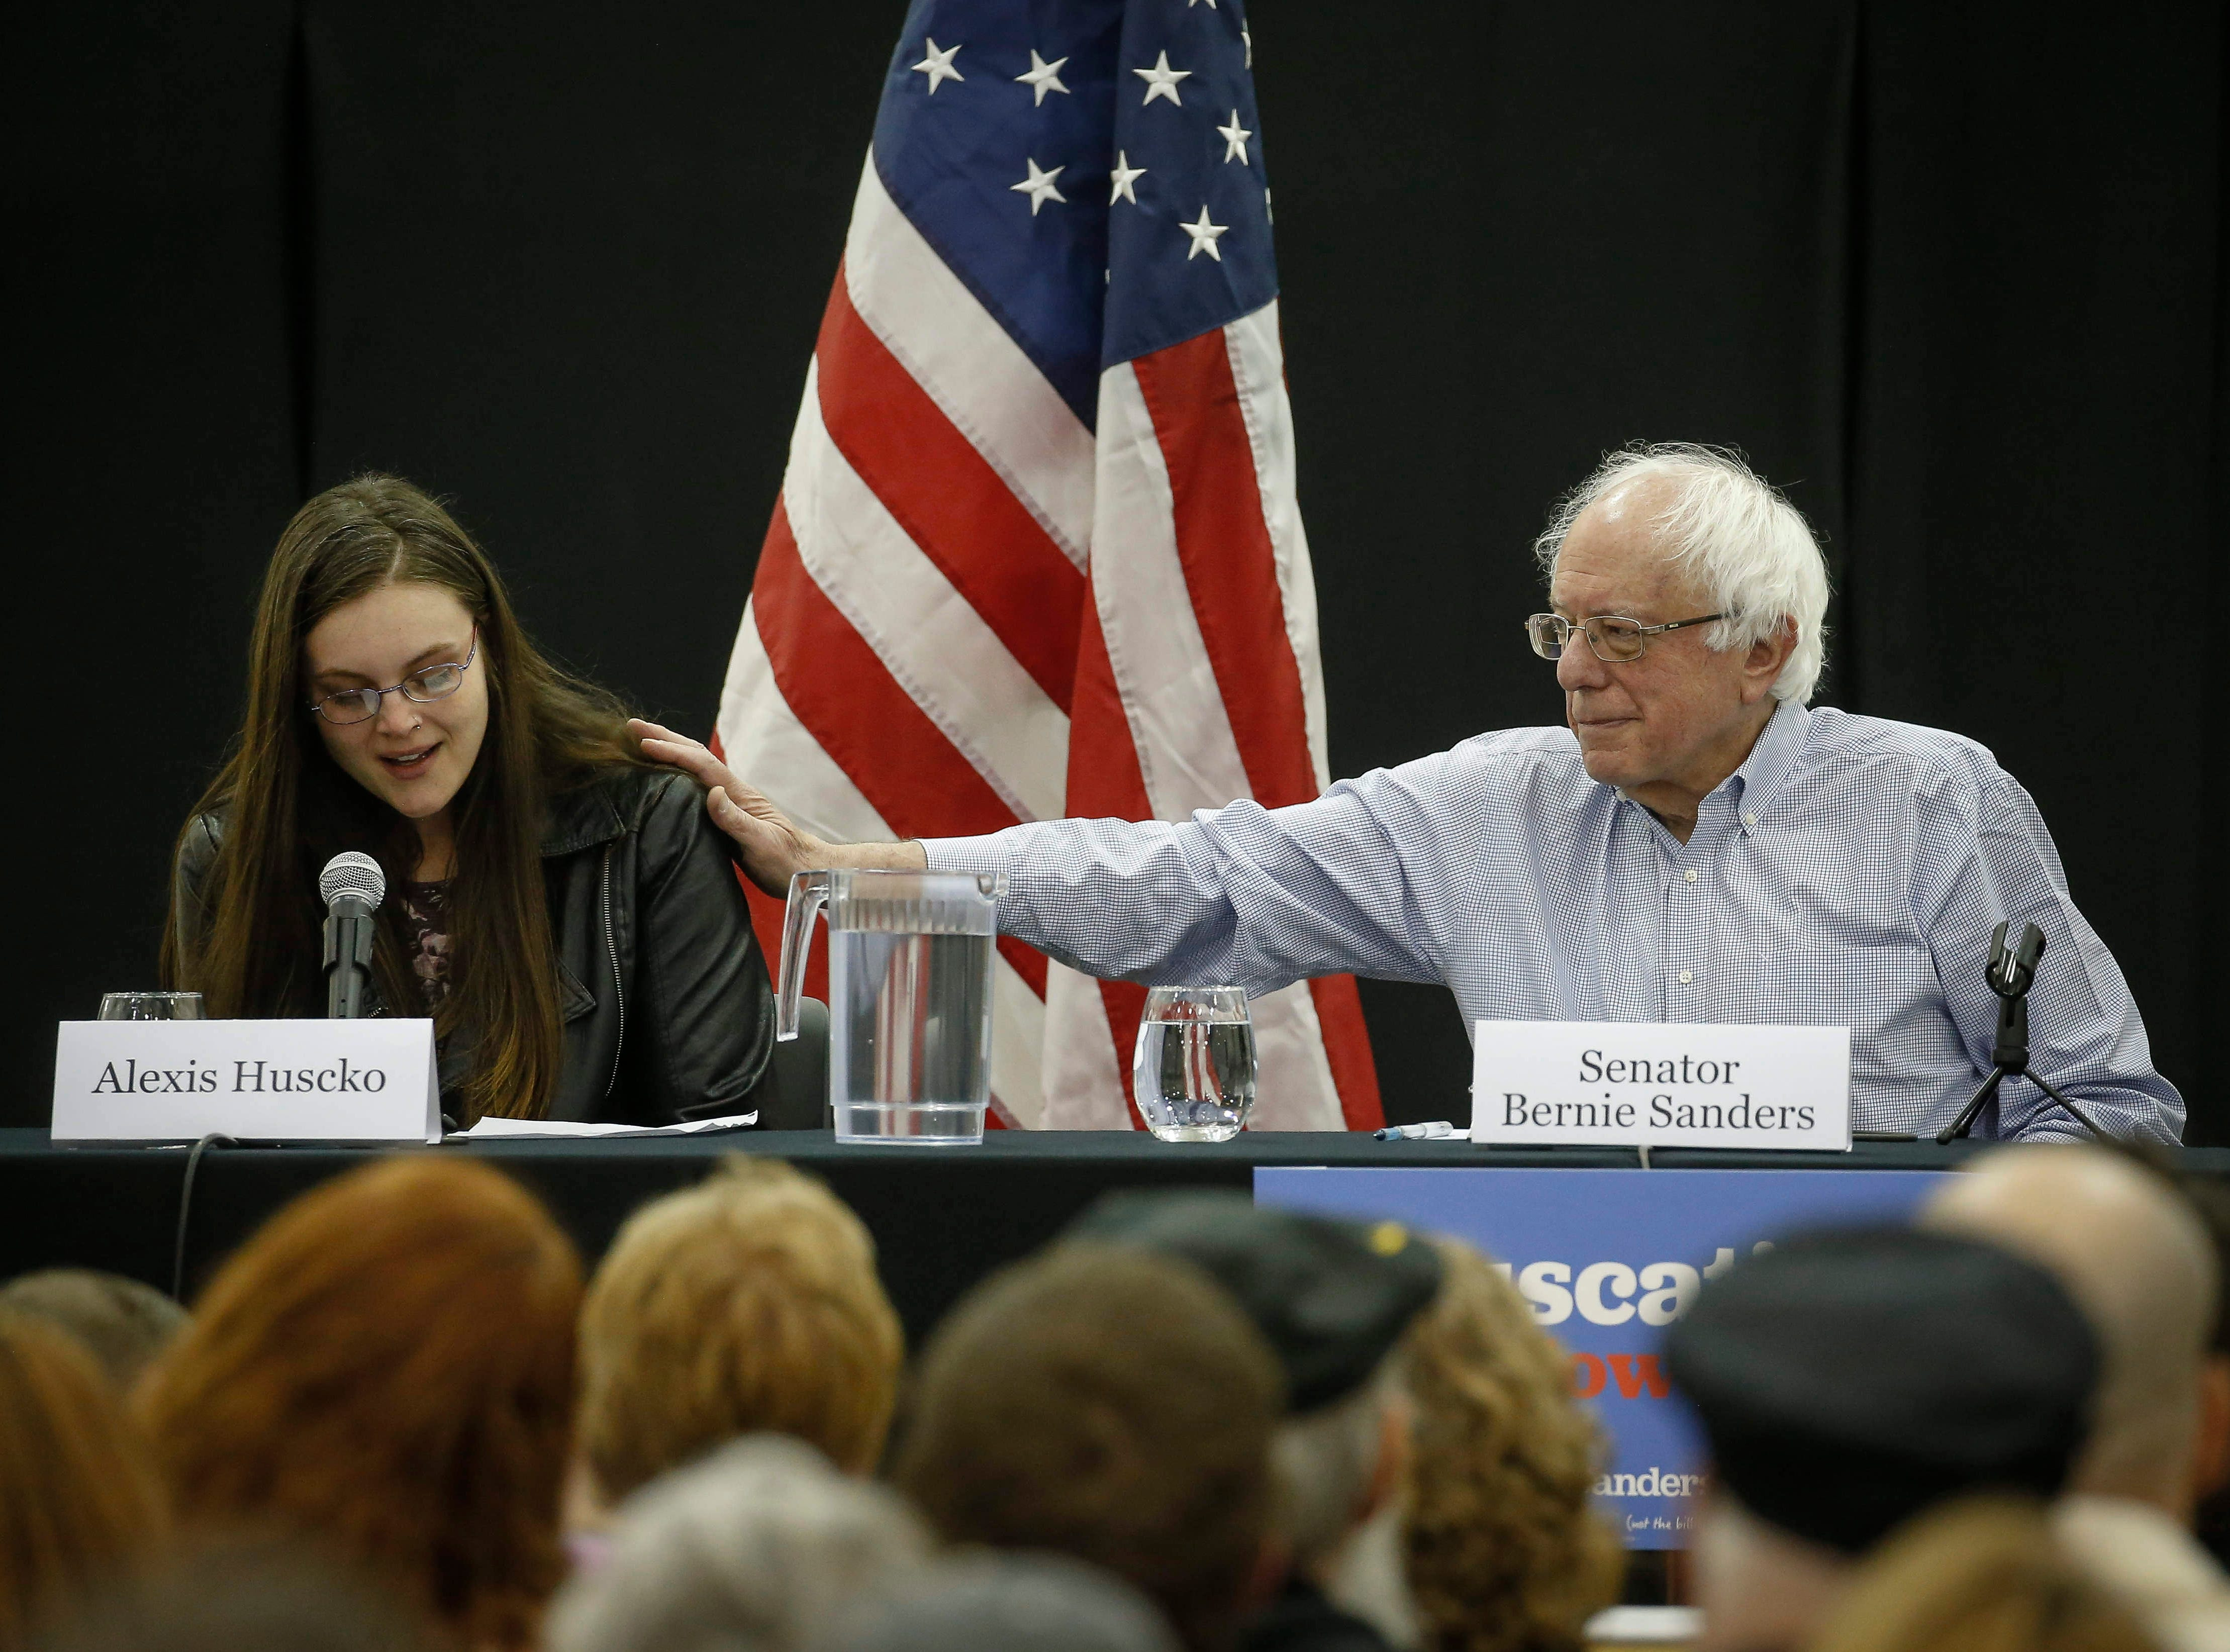 Democratic presidential candidate hopeful and U.S. Sen. Bernie Sanders reaches over to comfort Alexis Huscko of Muscatine as she shares a personal story of battling mental health issues during a town hall meeting at West Middle School in Muscatine on Saturday, April 6, 2019.